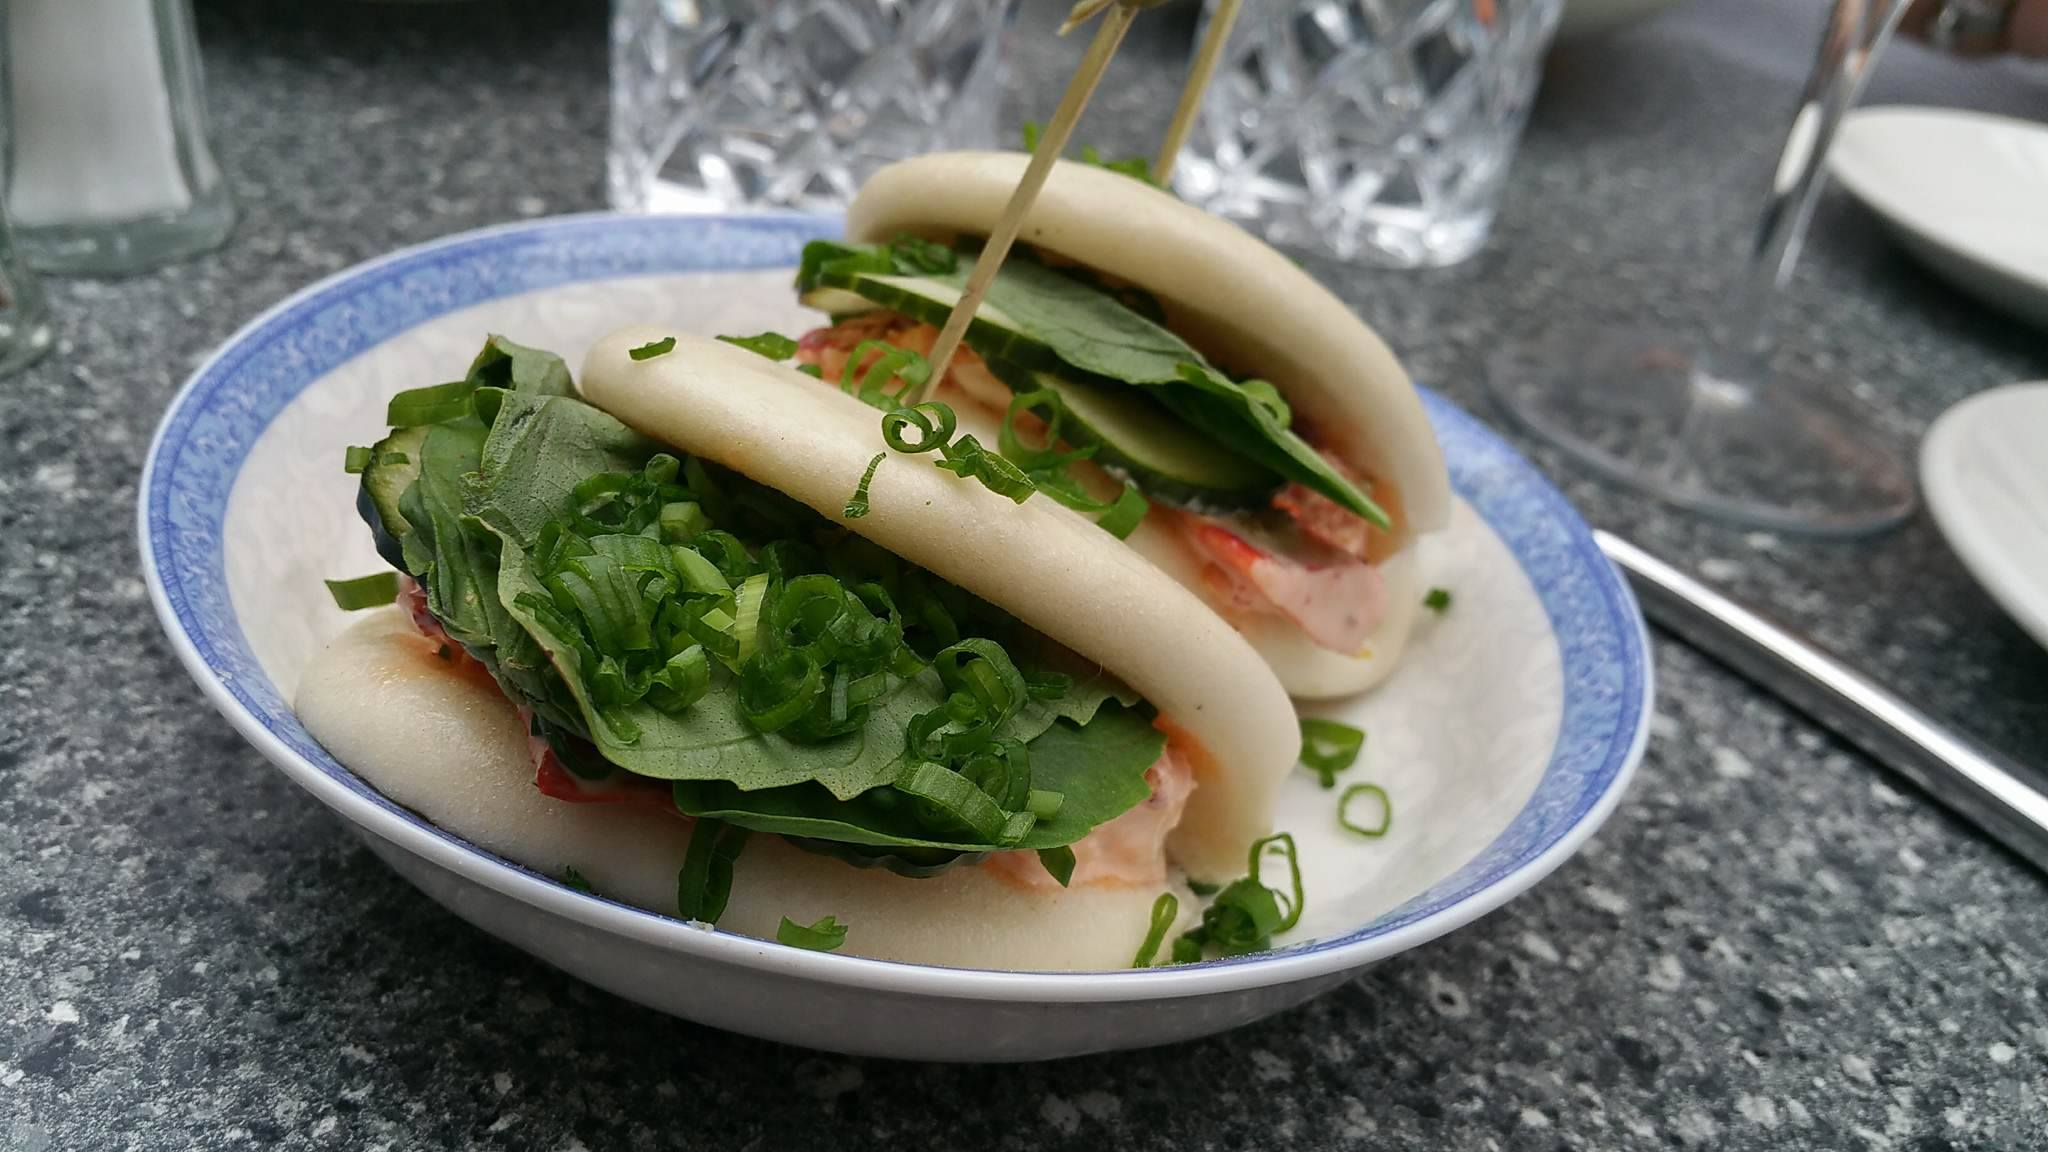 Lobster bao buns